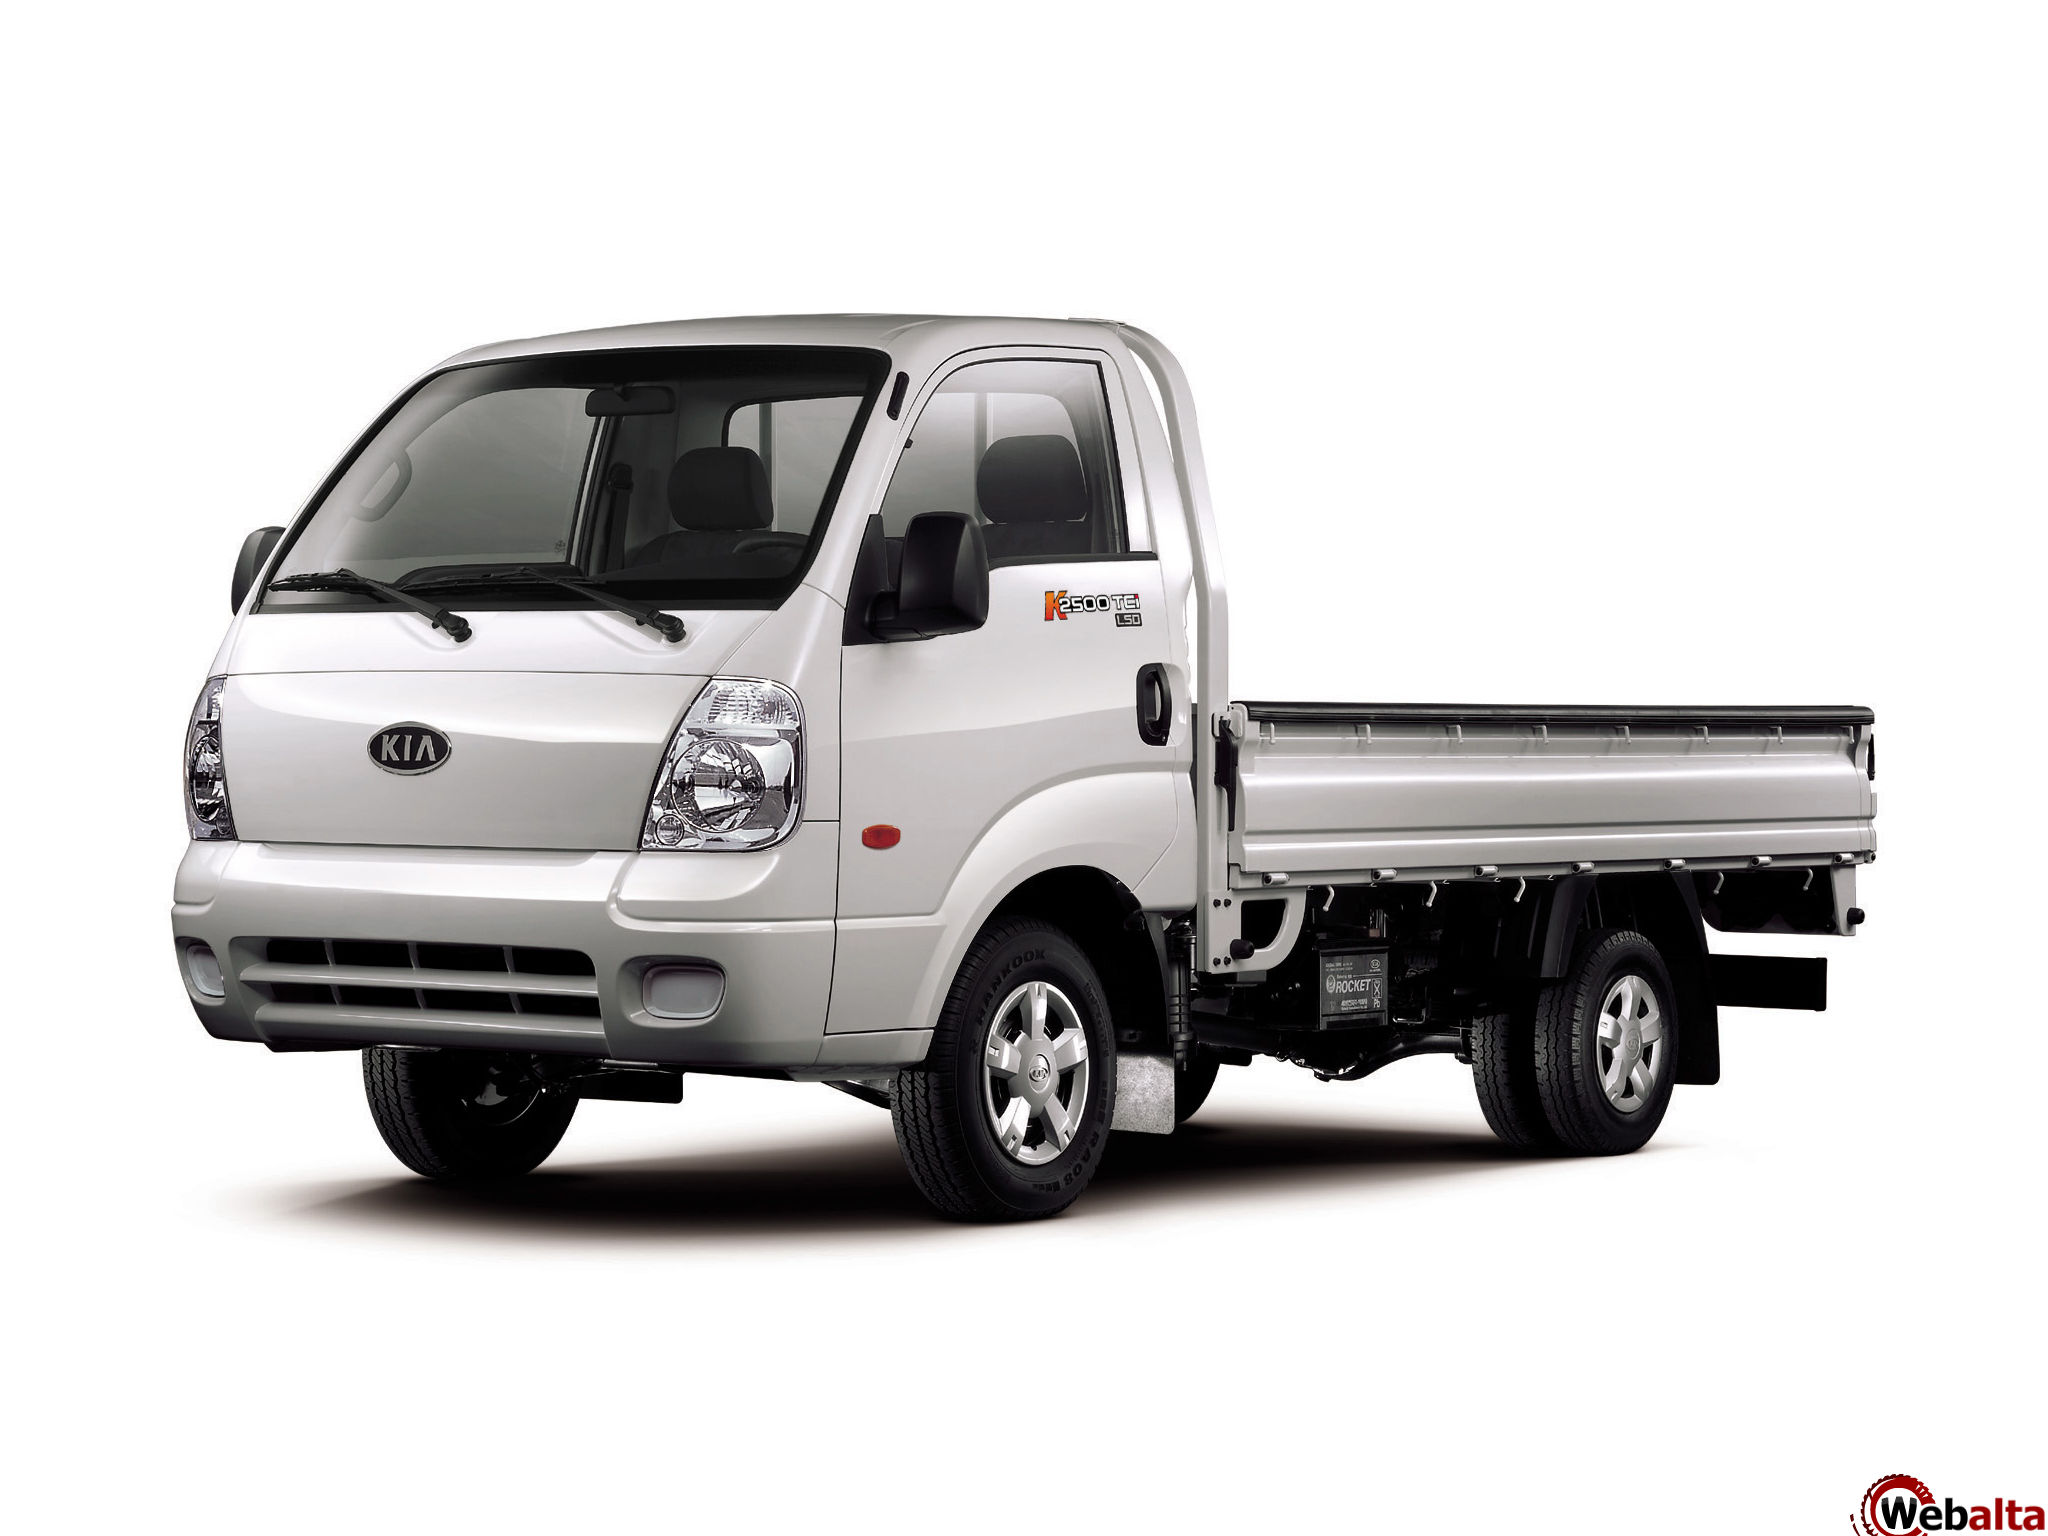 Kia k-series photo - 1